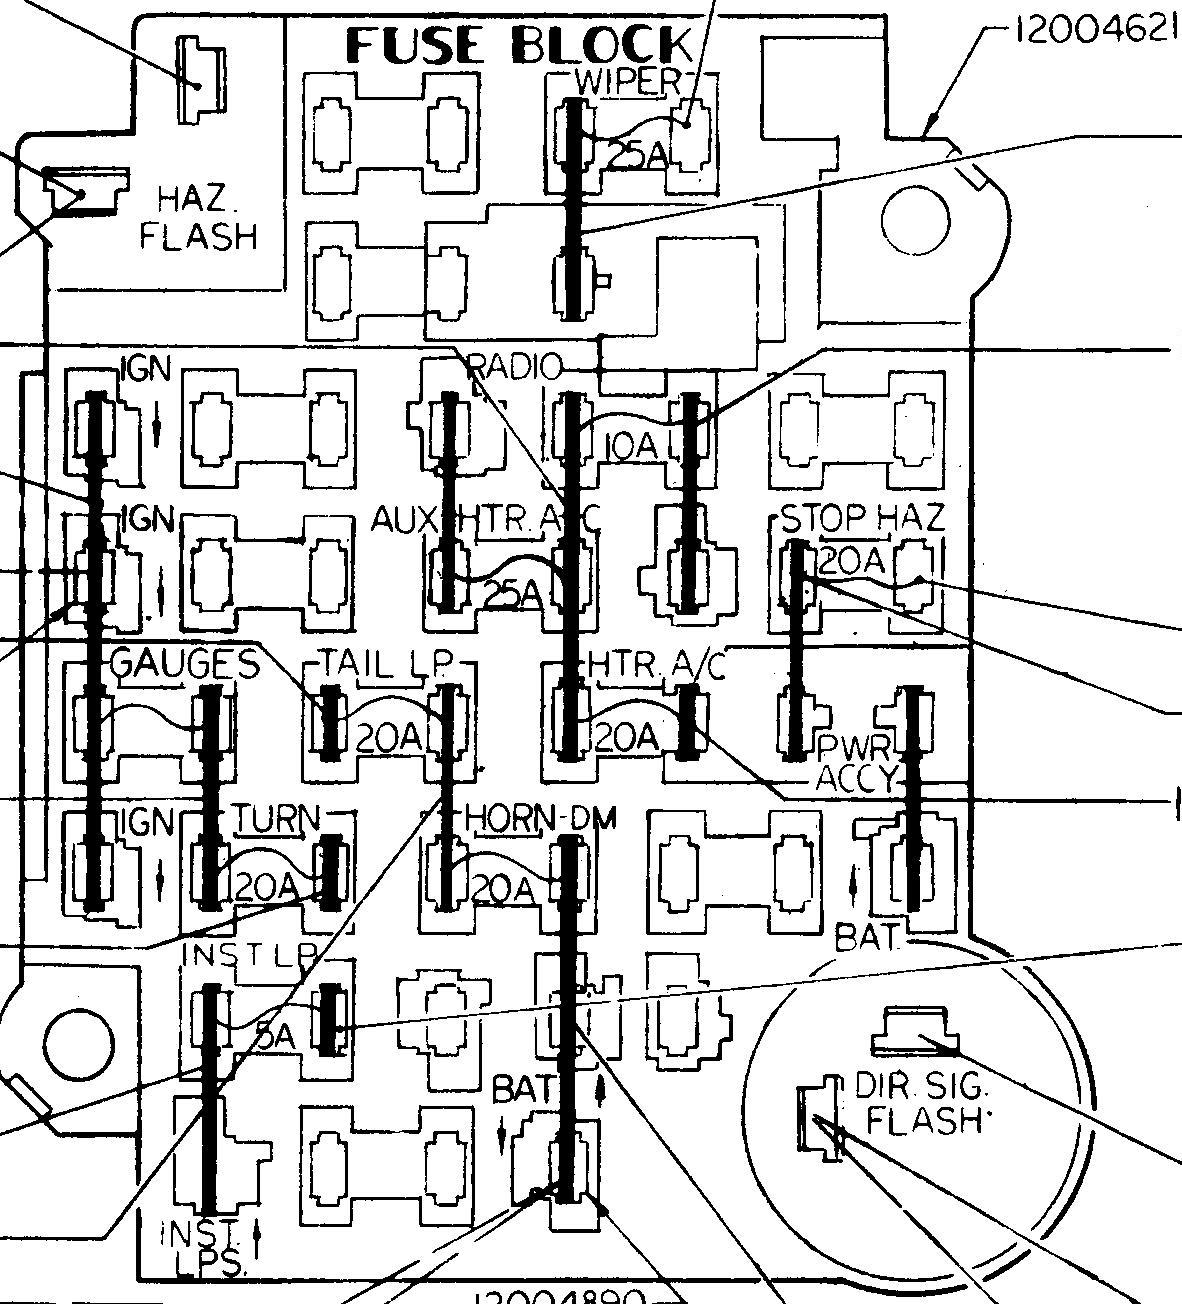 hight resolution of 78 corvette fuse box diagram wiring diagram third level 1999 e250 fuse panel diagram 1978 camaro